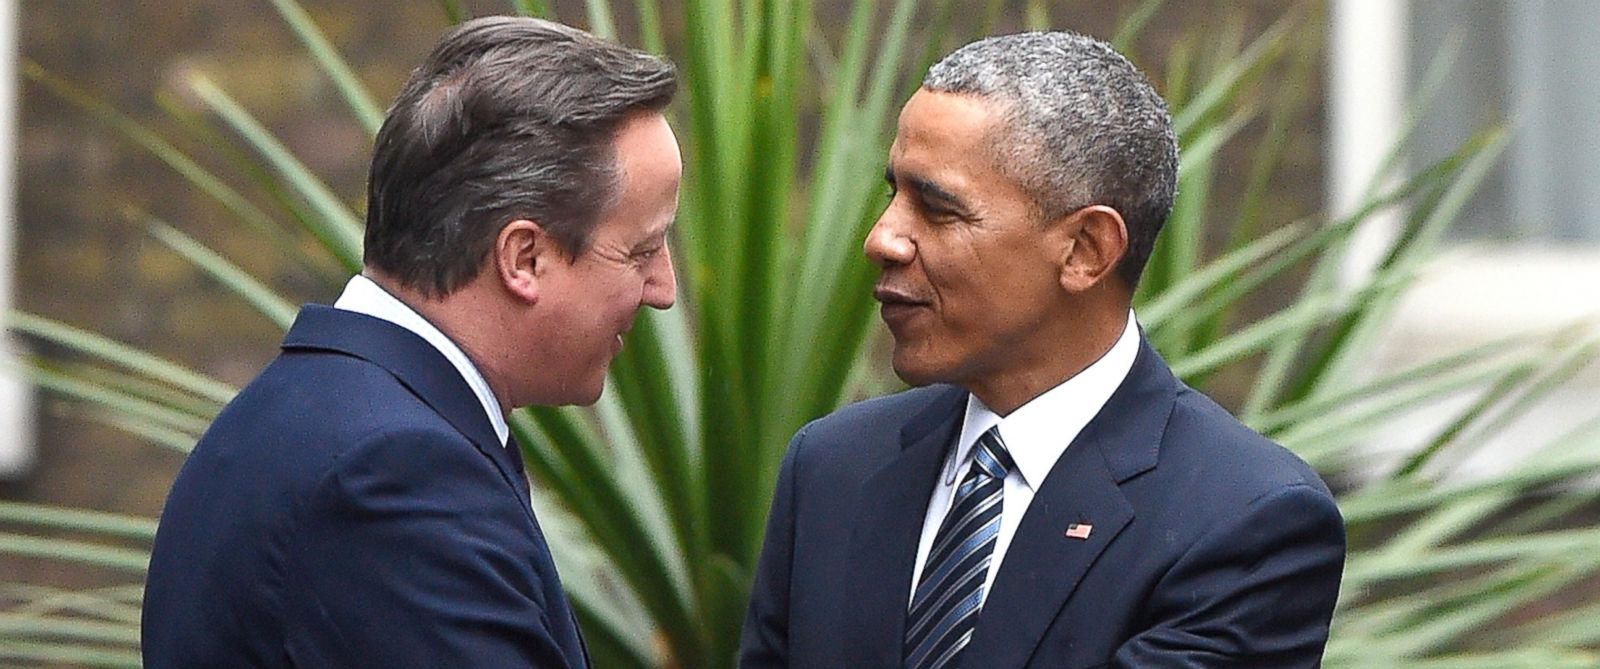 PHOTO: Britains Prime Minster David Cameron, welcomes U.S. President Barack Obama to Downing Street, ahead of a bilateral meeting, April 22, 2016, in London.